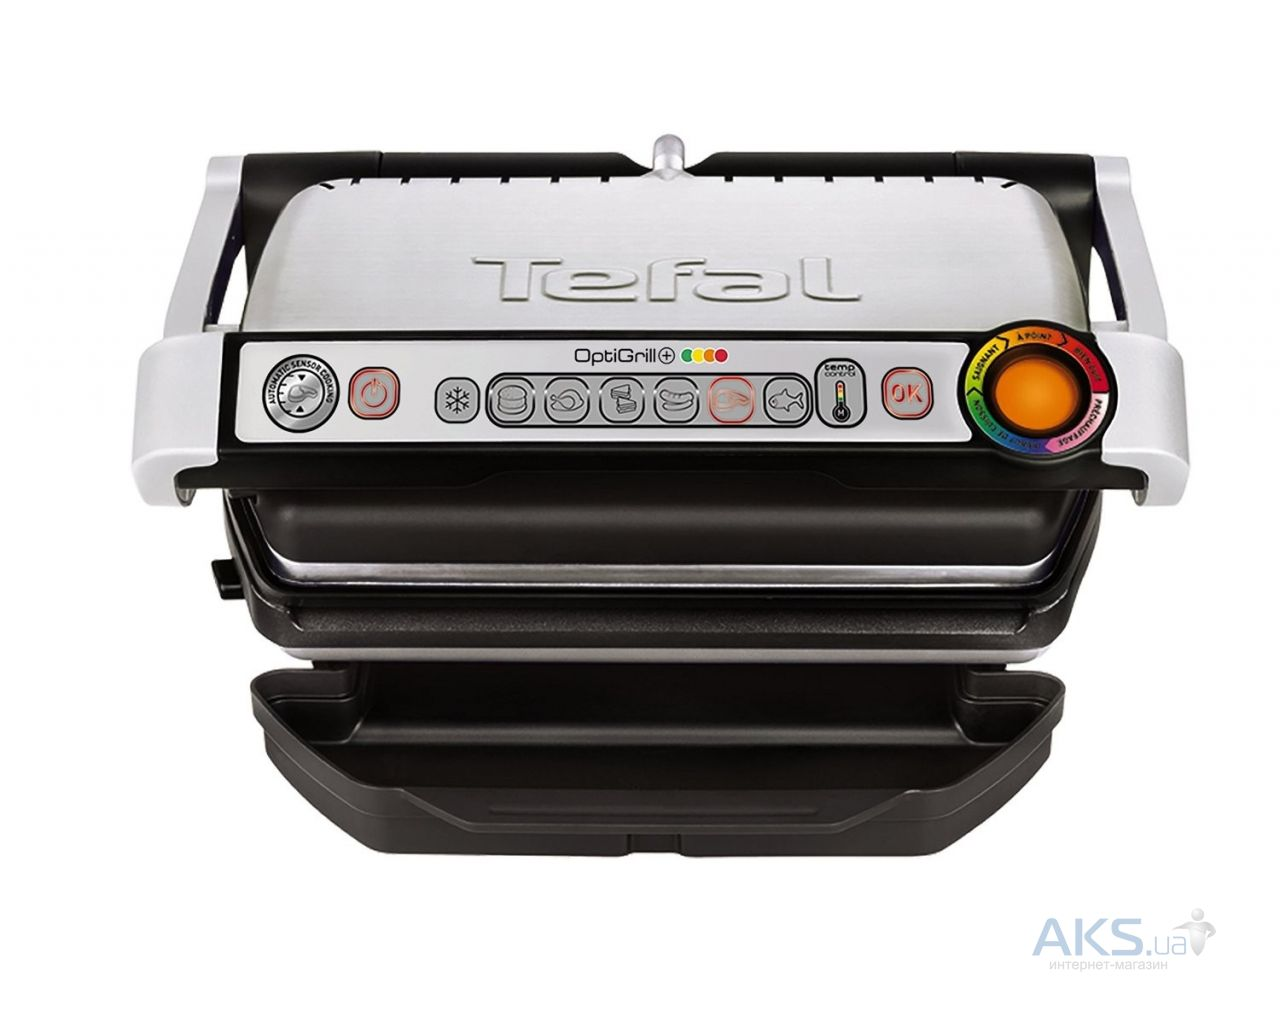 Вид 2 - Гриль Tefal 712D34 Optigrill Plus